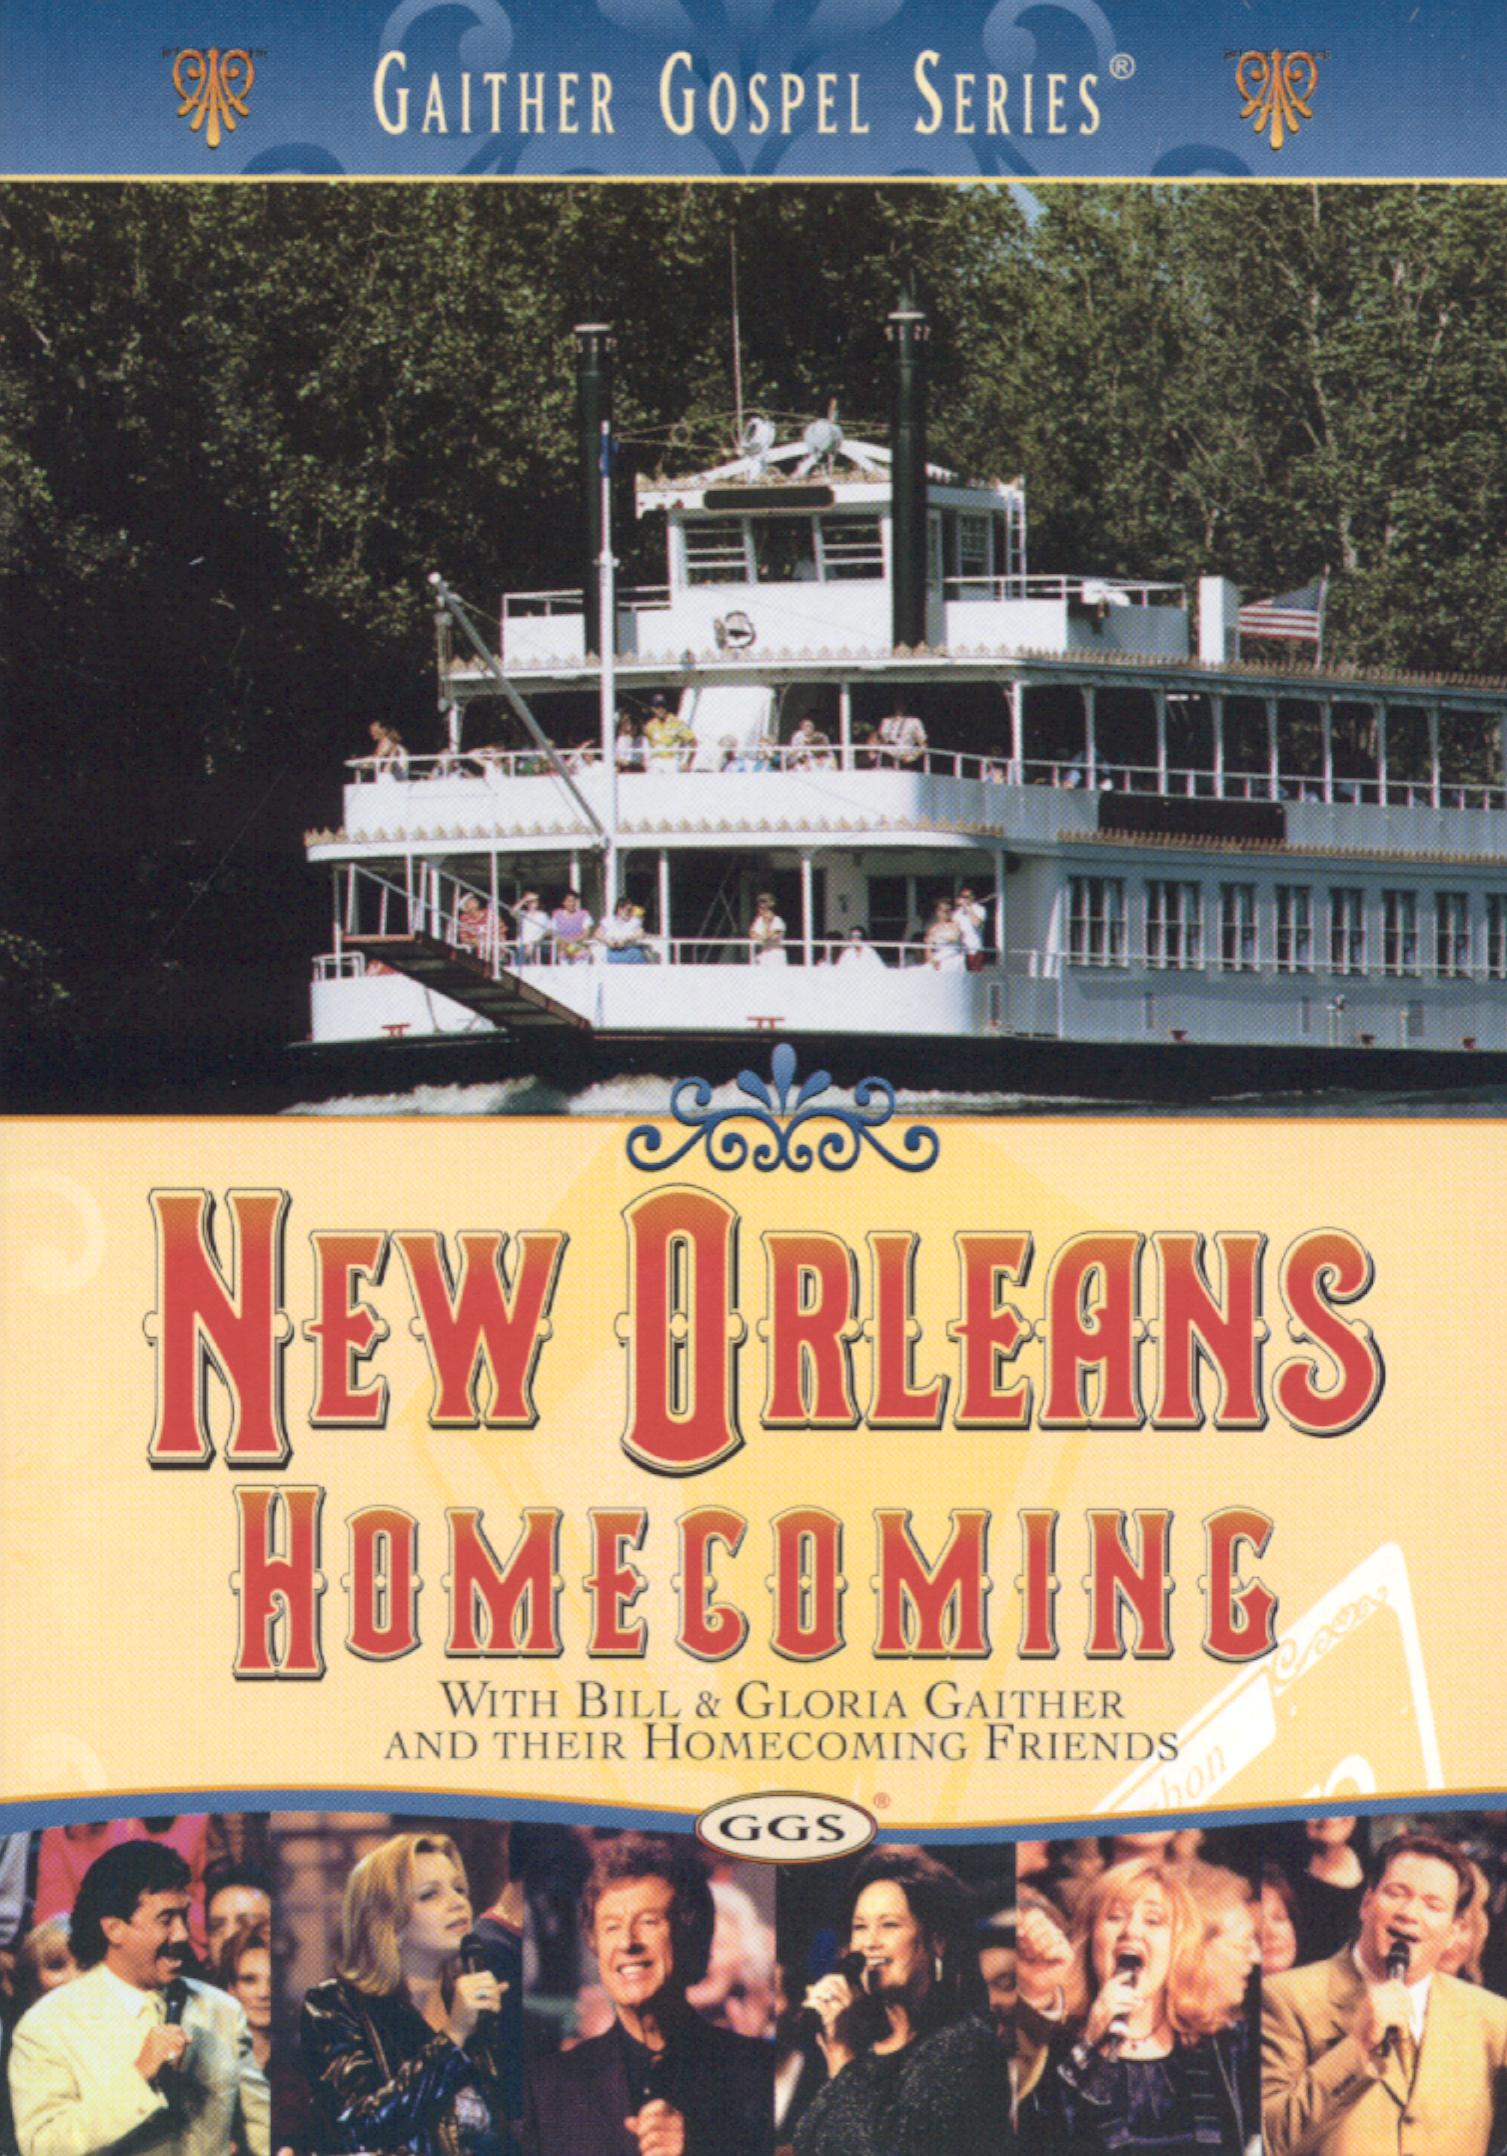 New Orleans Homecoming (With Bill & Gloria Gaither and Their Homecoming Friends)